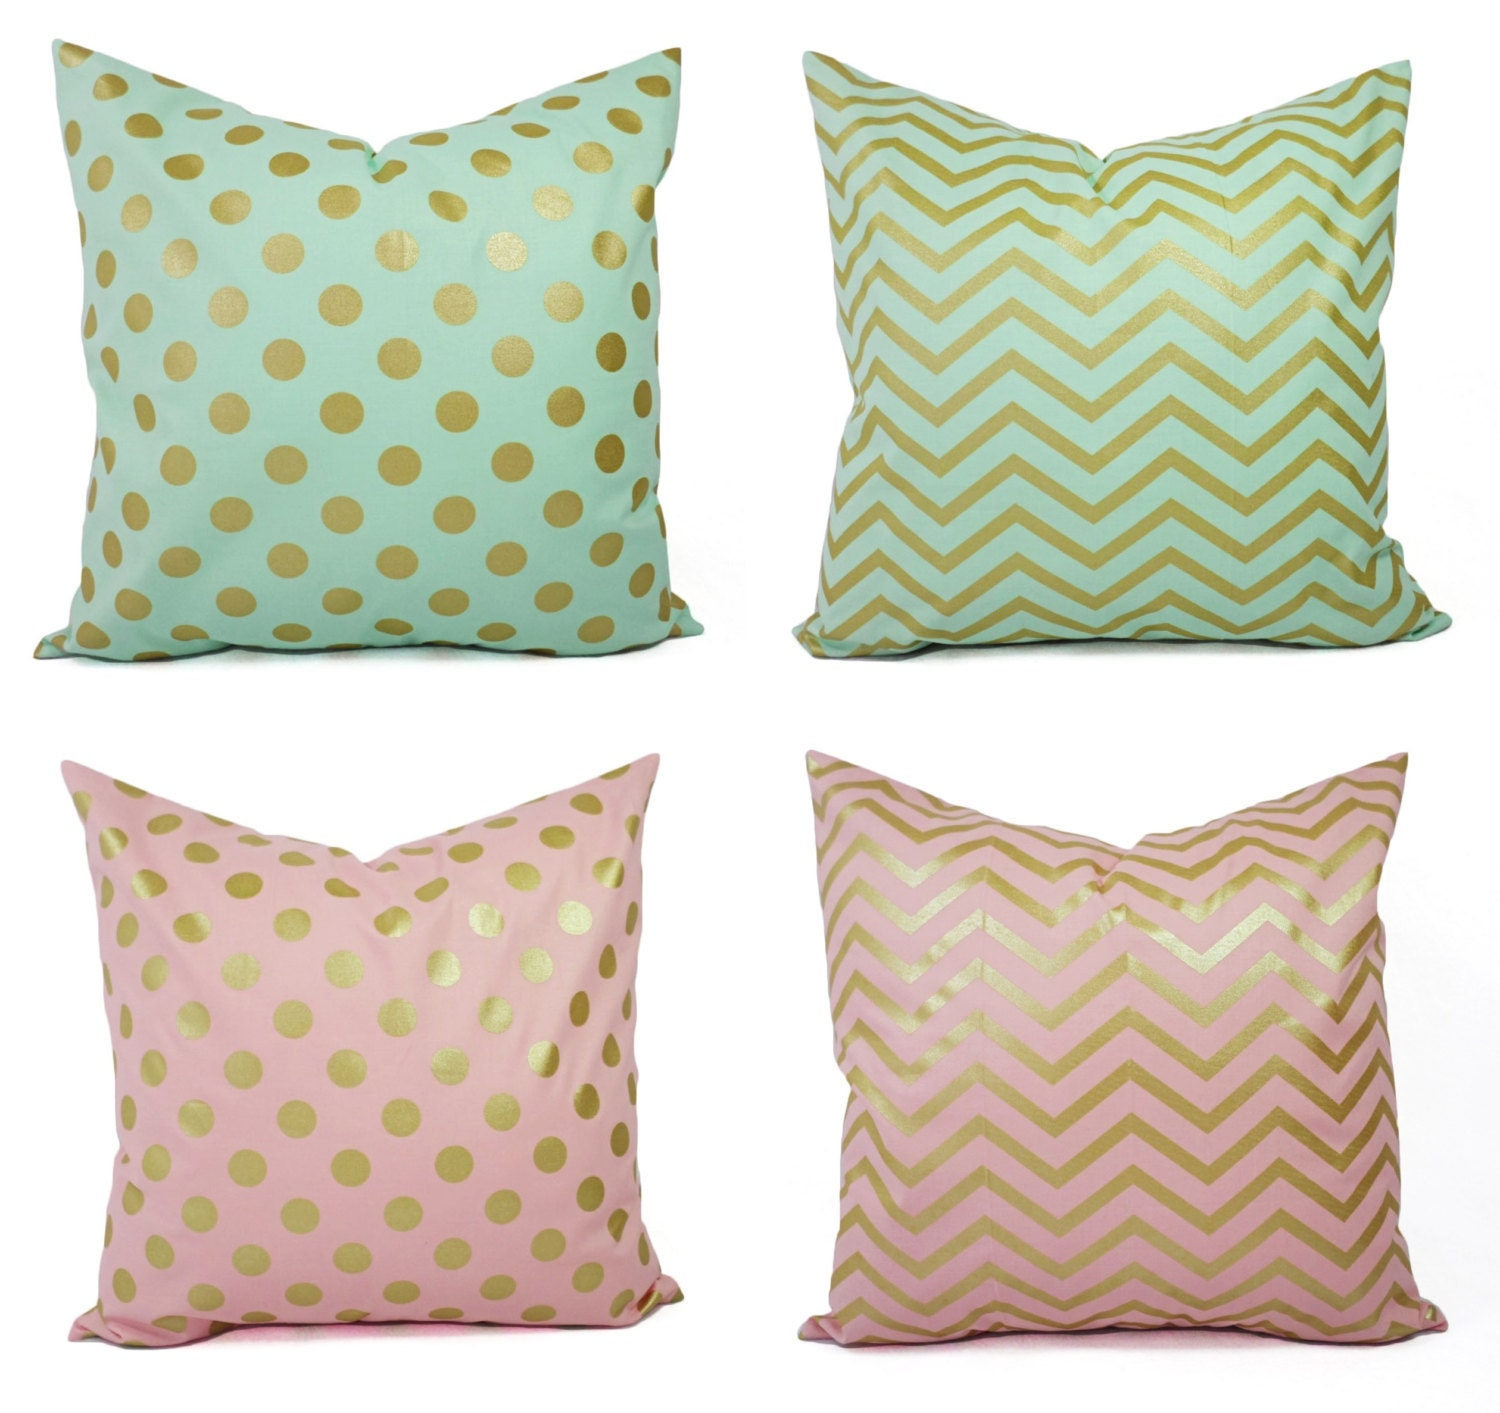 aura standard mint black and white house pillows kami bedroom charcoal pillowcase home pillow